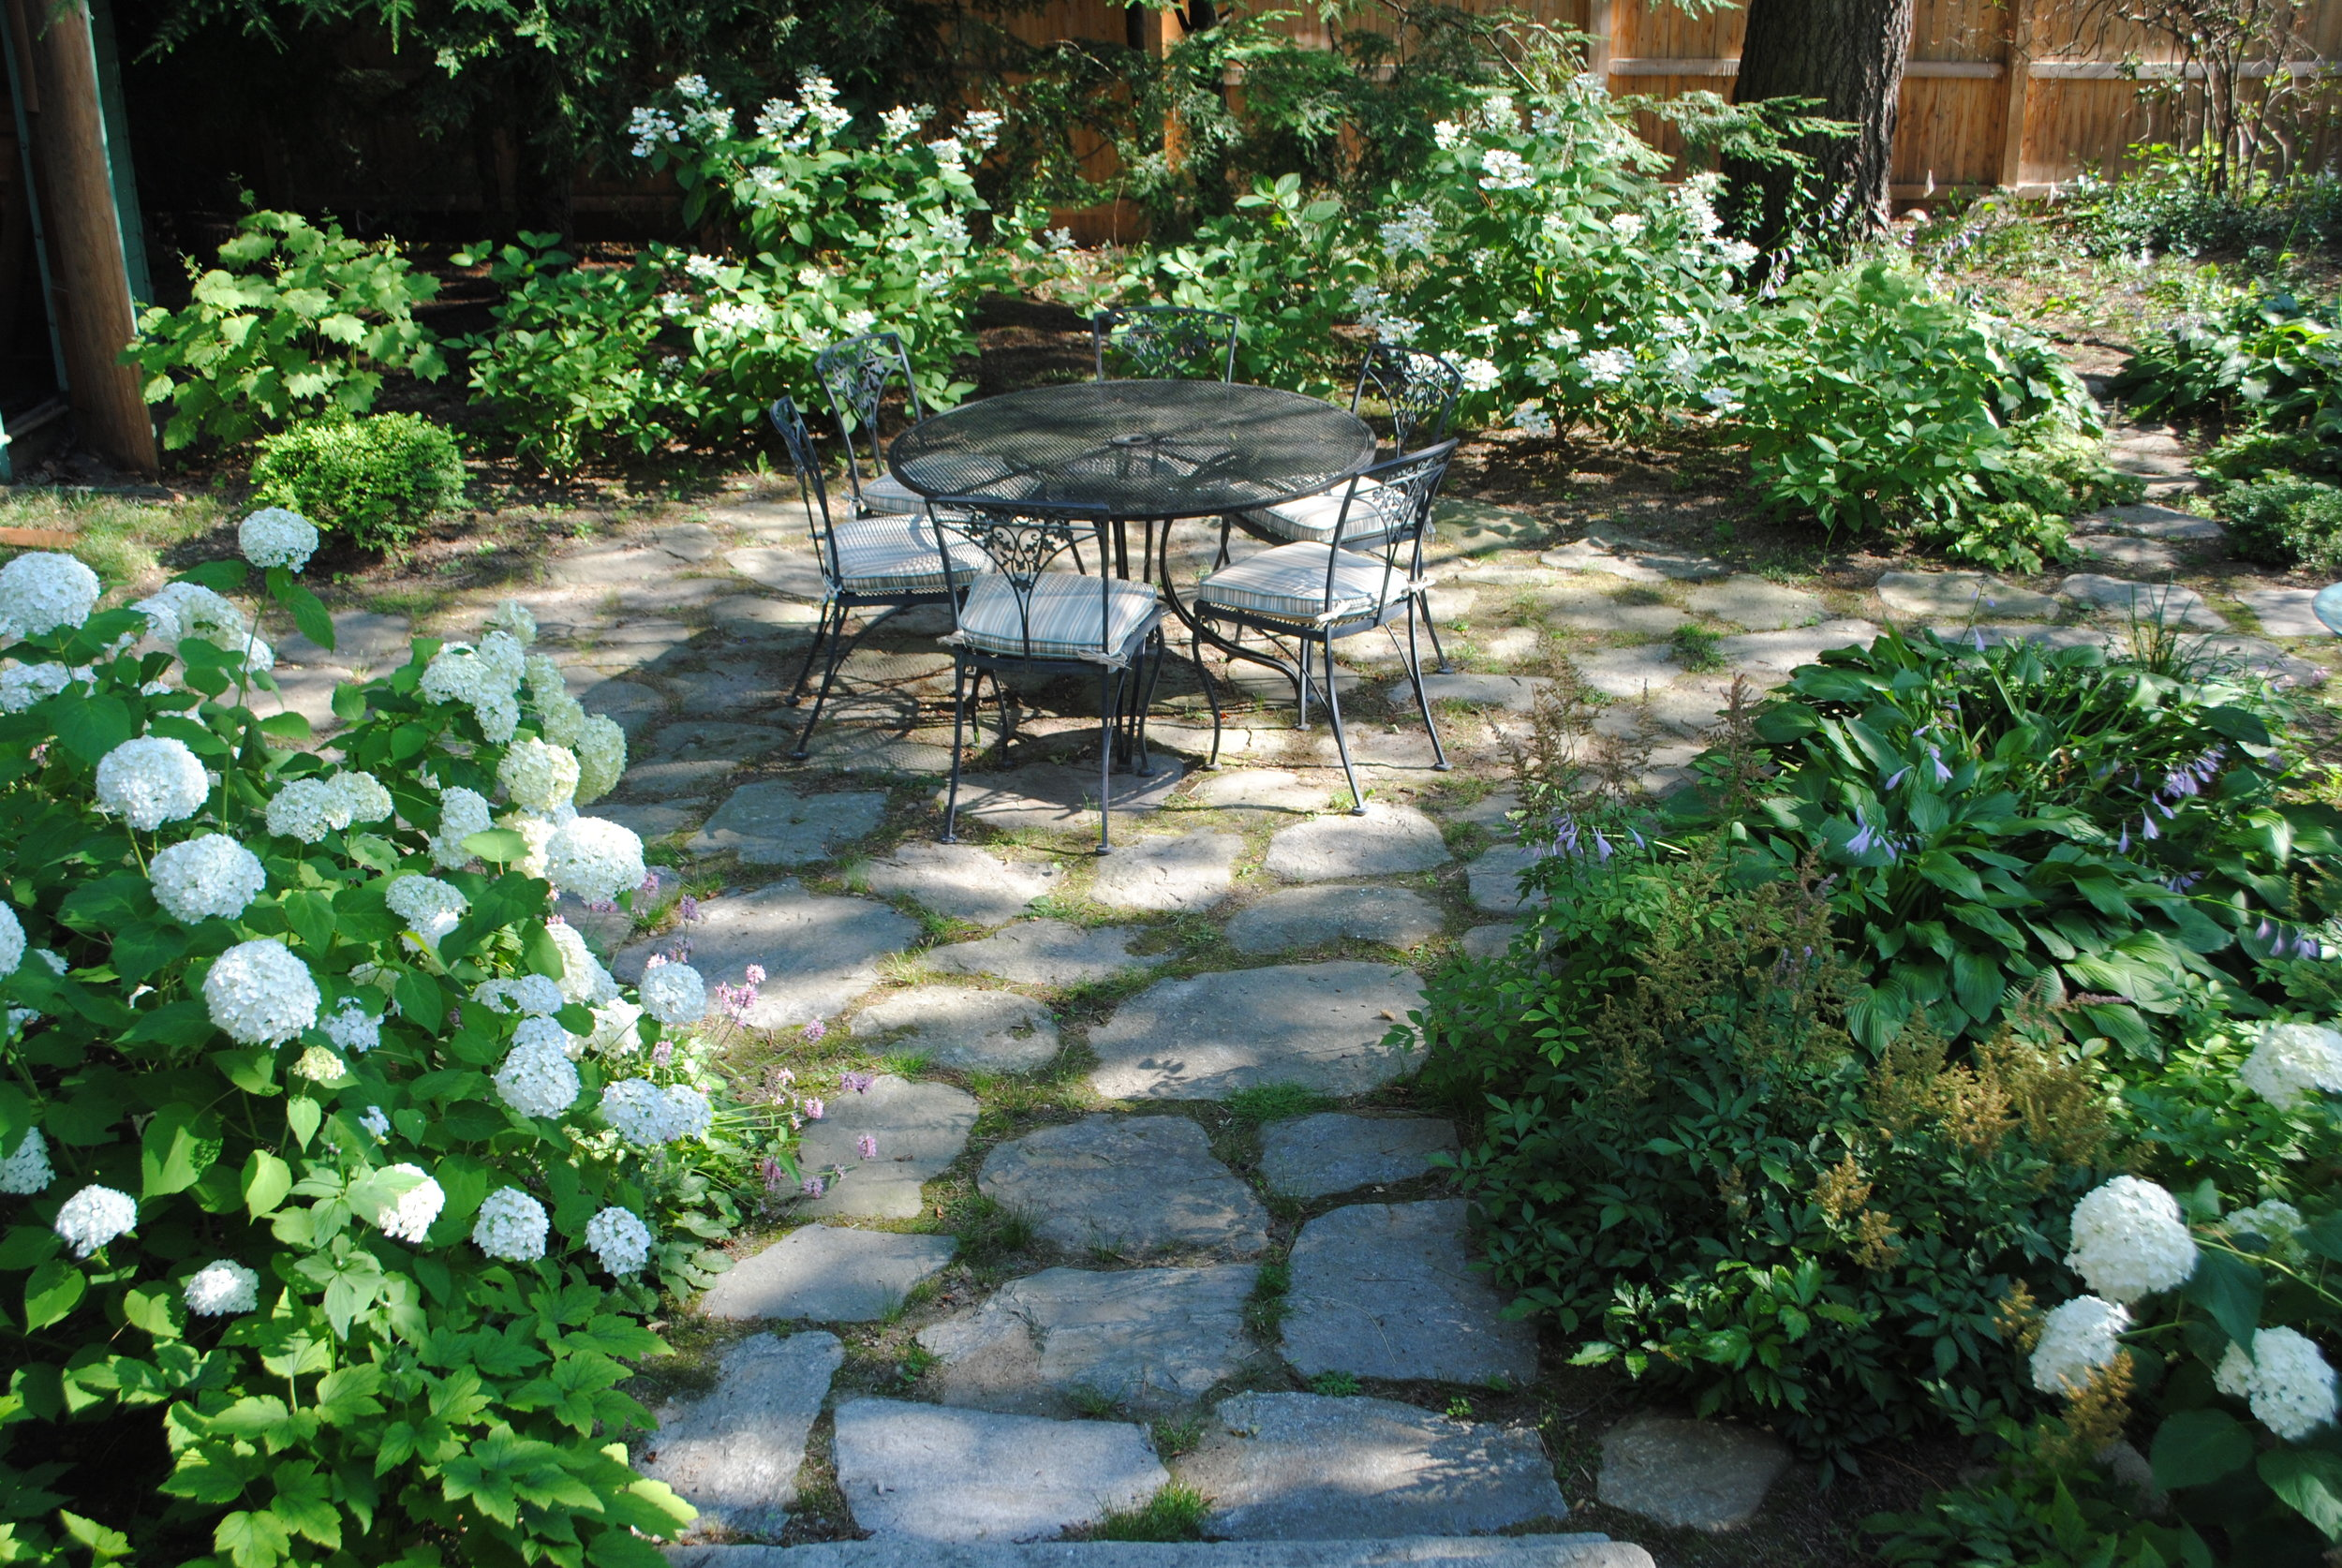 Awkward paths are reshaped to create a circular fieldstone patio, and shrubs and perennials replace the grass that is struggling in deep shade.